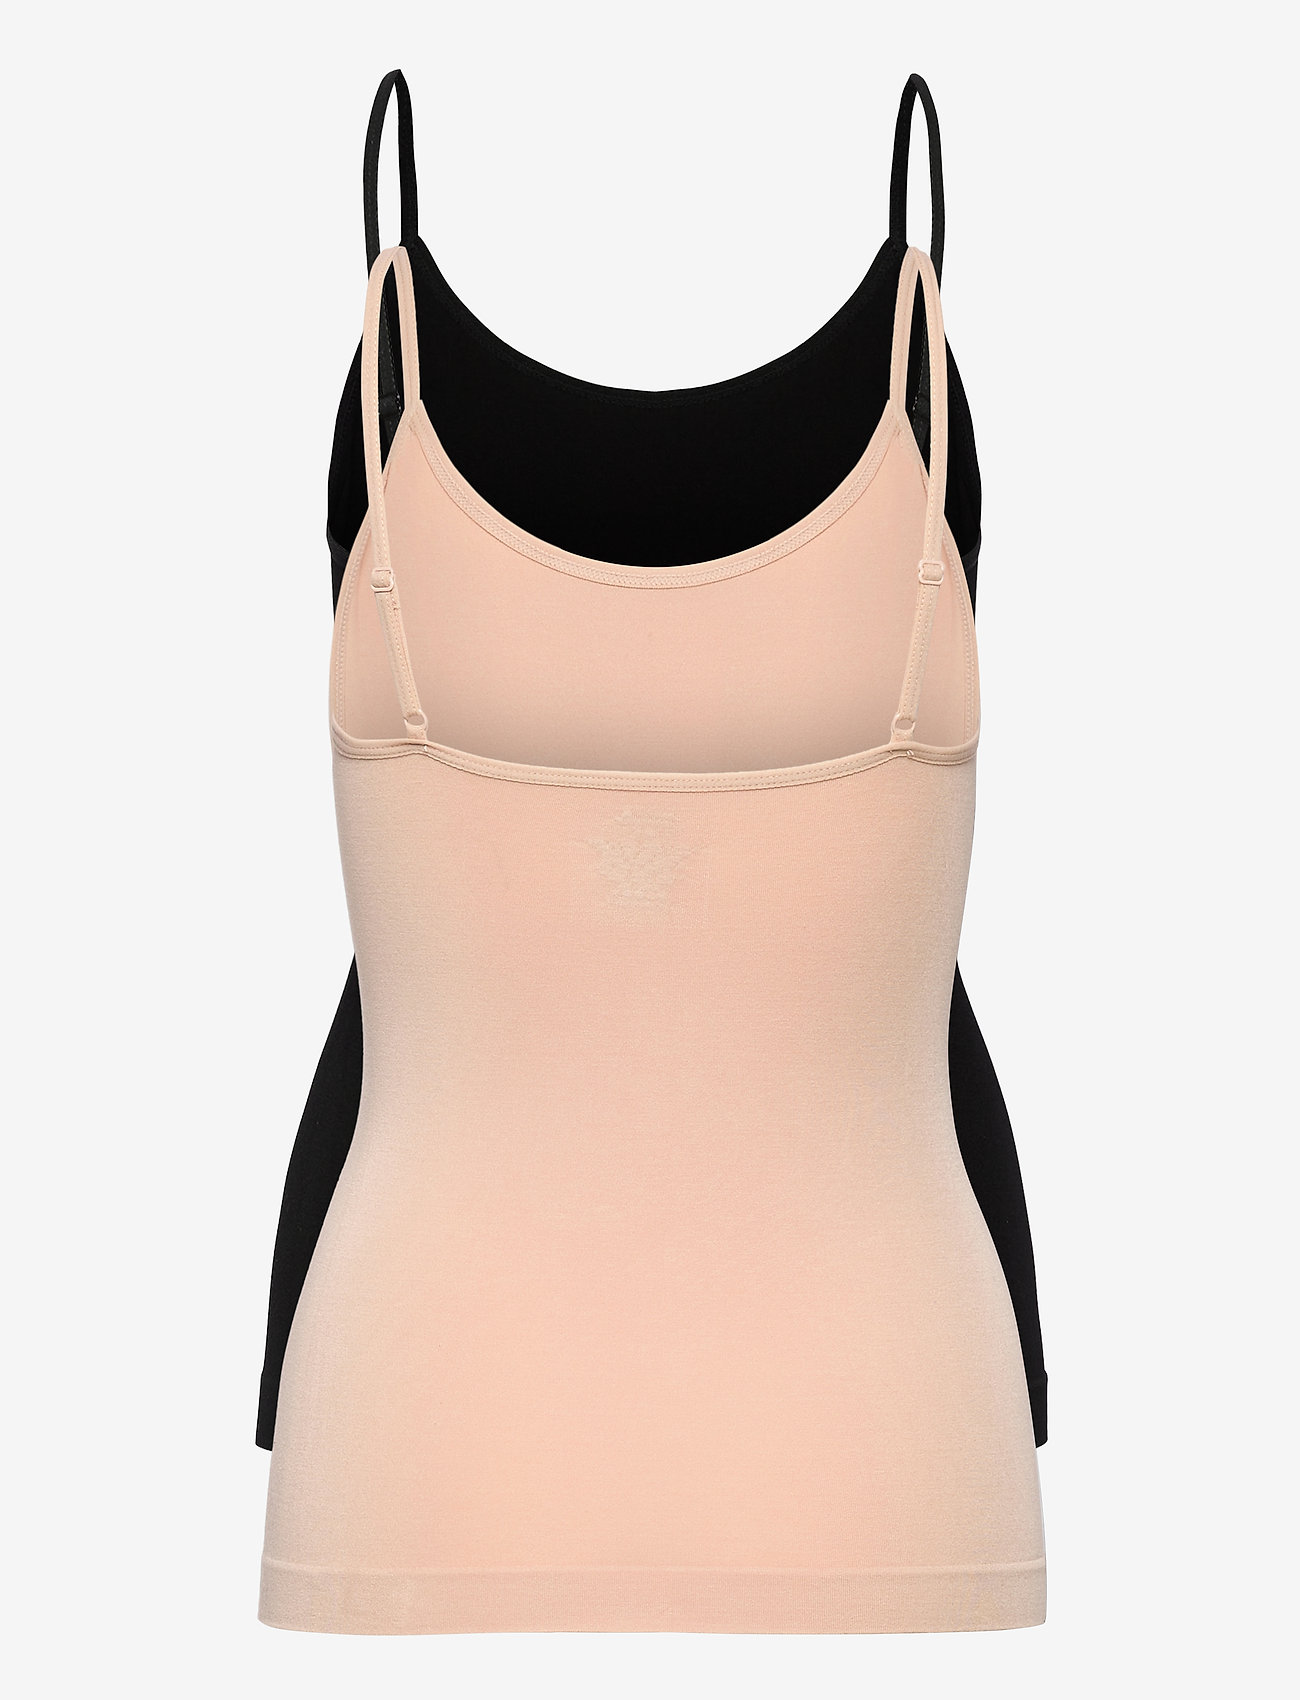 Danish Endurance - Womens Bamboo Strap Top 2-pack - topjes - multicolor (1x black, 1x nude beige) - 1